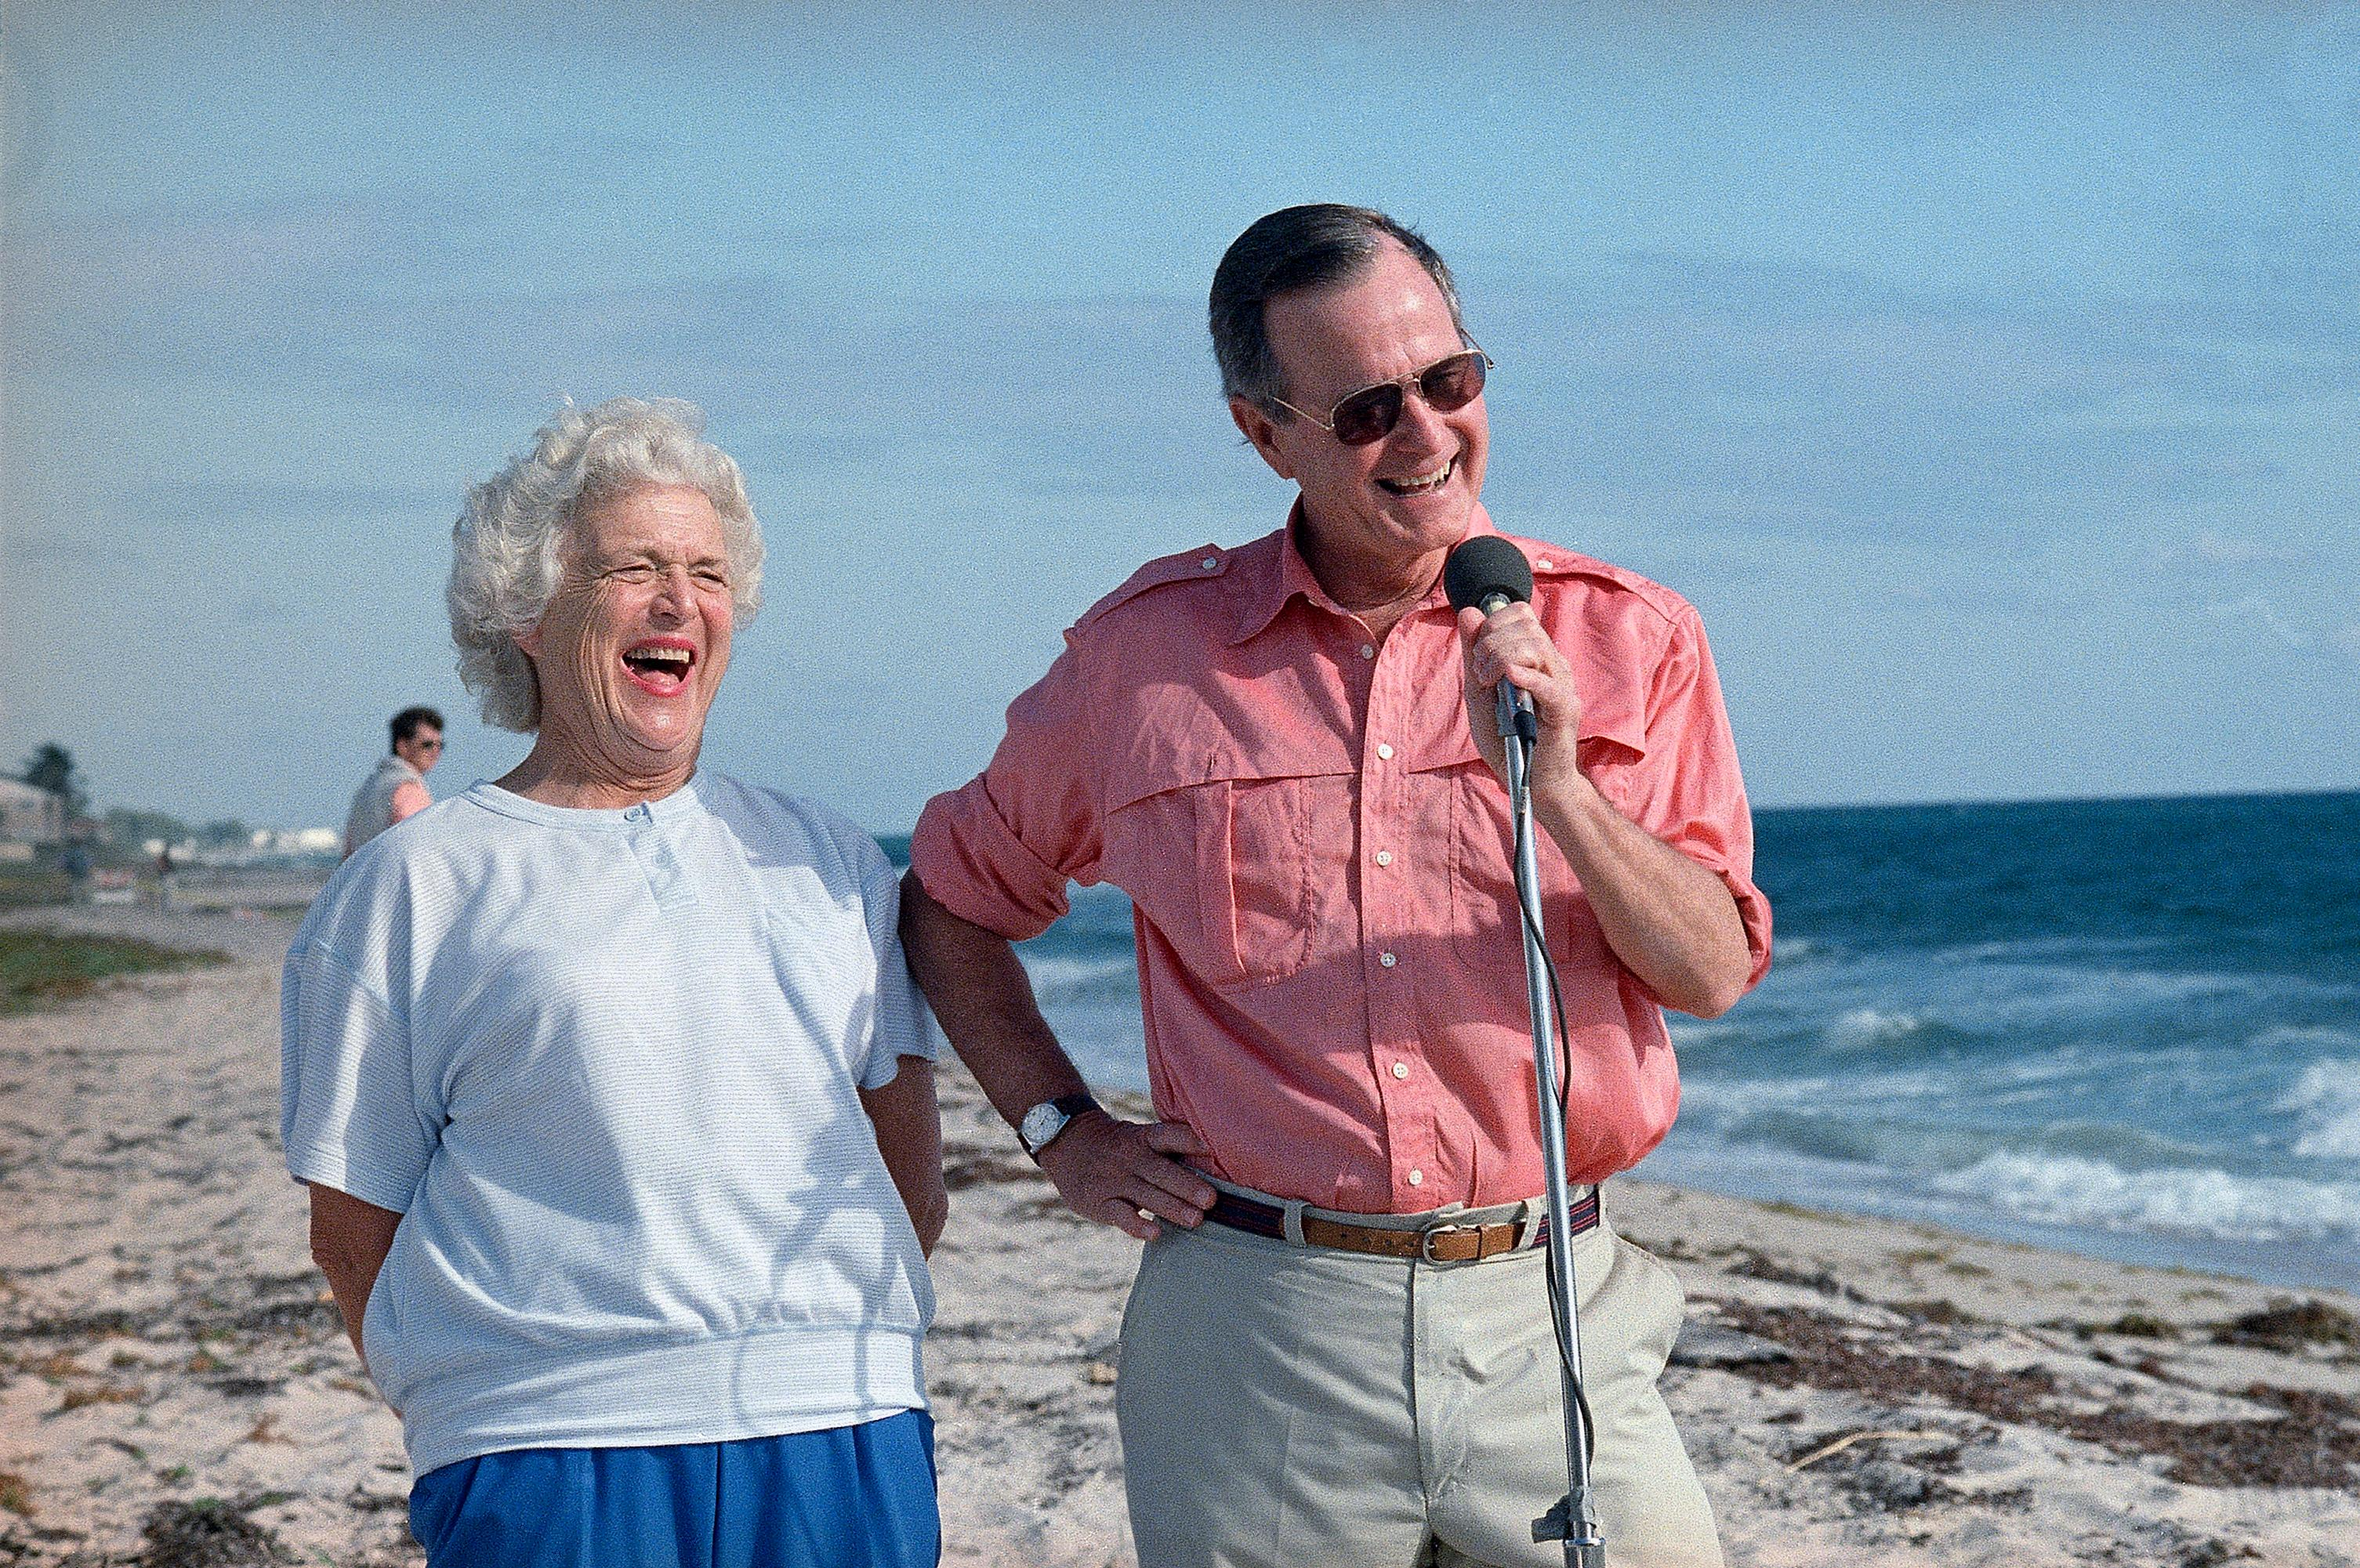 FILE - In this Nov. 14, 1988, file photo, President-elect George H.W. Bush and his wife, Barbara, are shown during a morning beachfront news conference in Gulf Stream, Fla. A family spokesman said Tuesday, April 17, 2018, that former first lady Barbara Bush has died at the age of 92. (AP Photo/Kathy Willens, File)